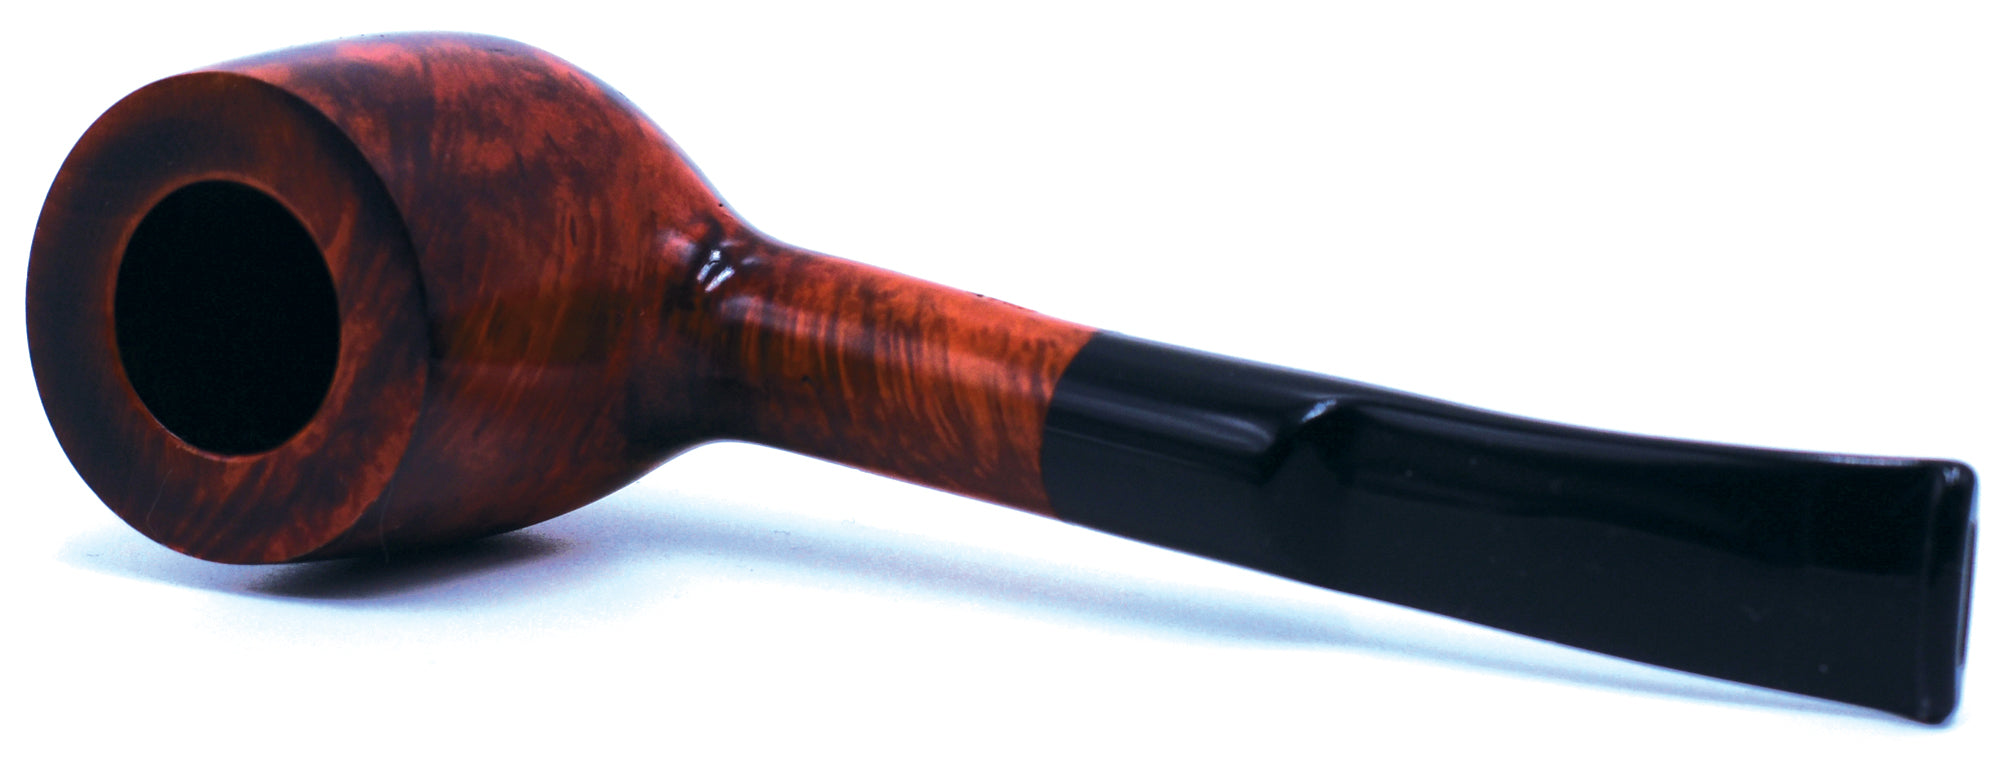 LEGENDEX® PAGANINI* 9 MM Filtered Briar Smoking Pipe Made In Italy 01-08-347